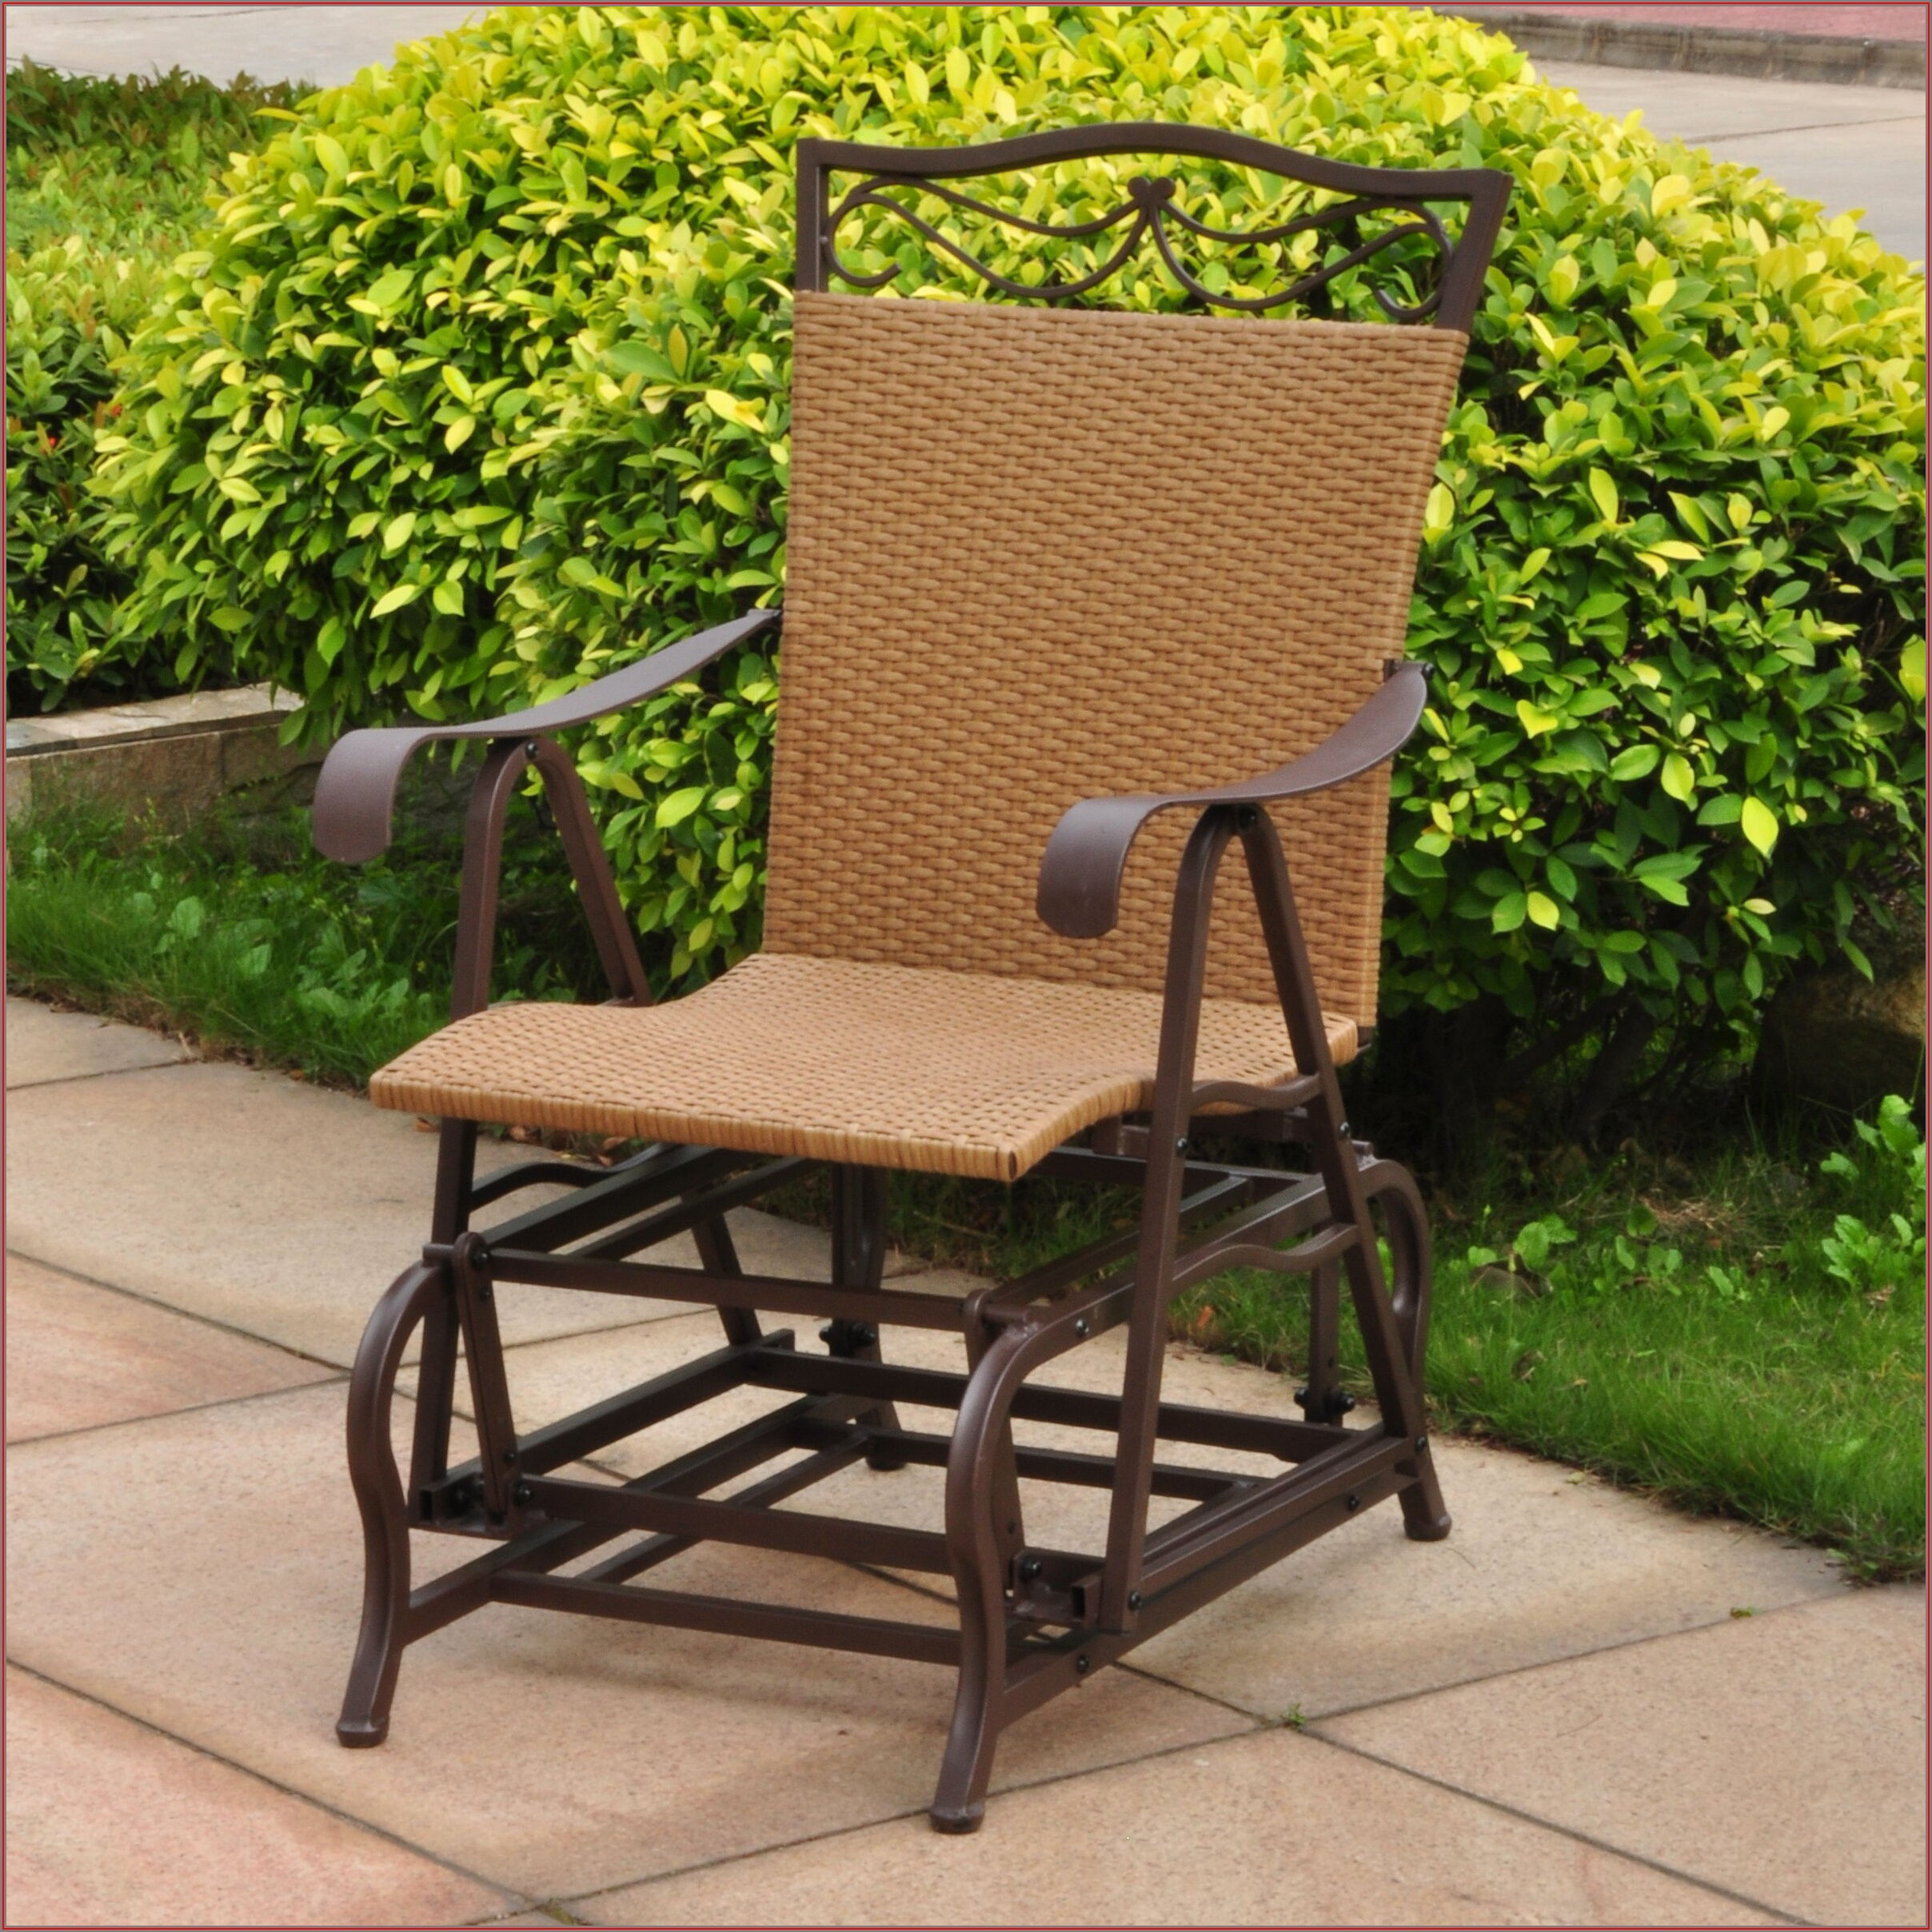 Wayfair Swivel Patio Chairs